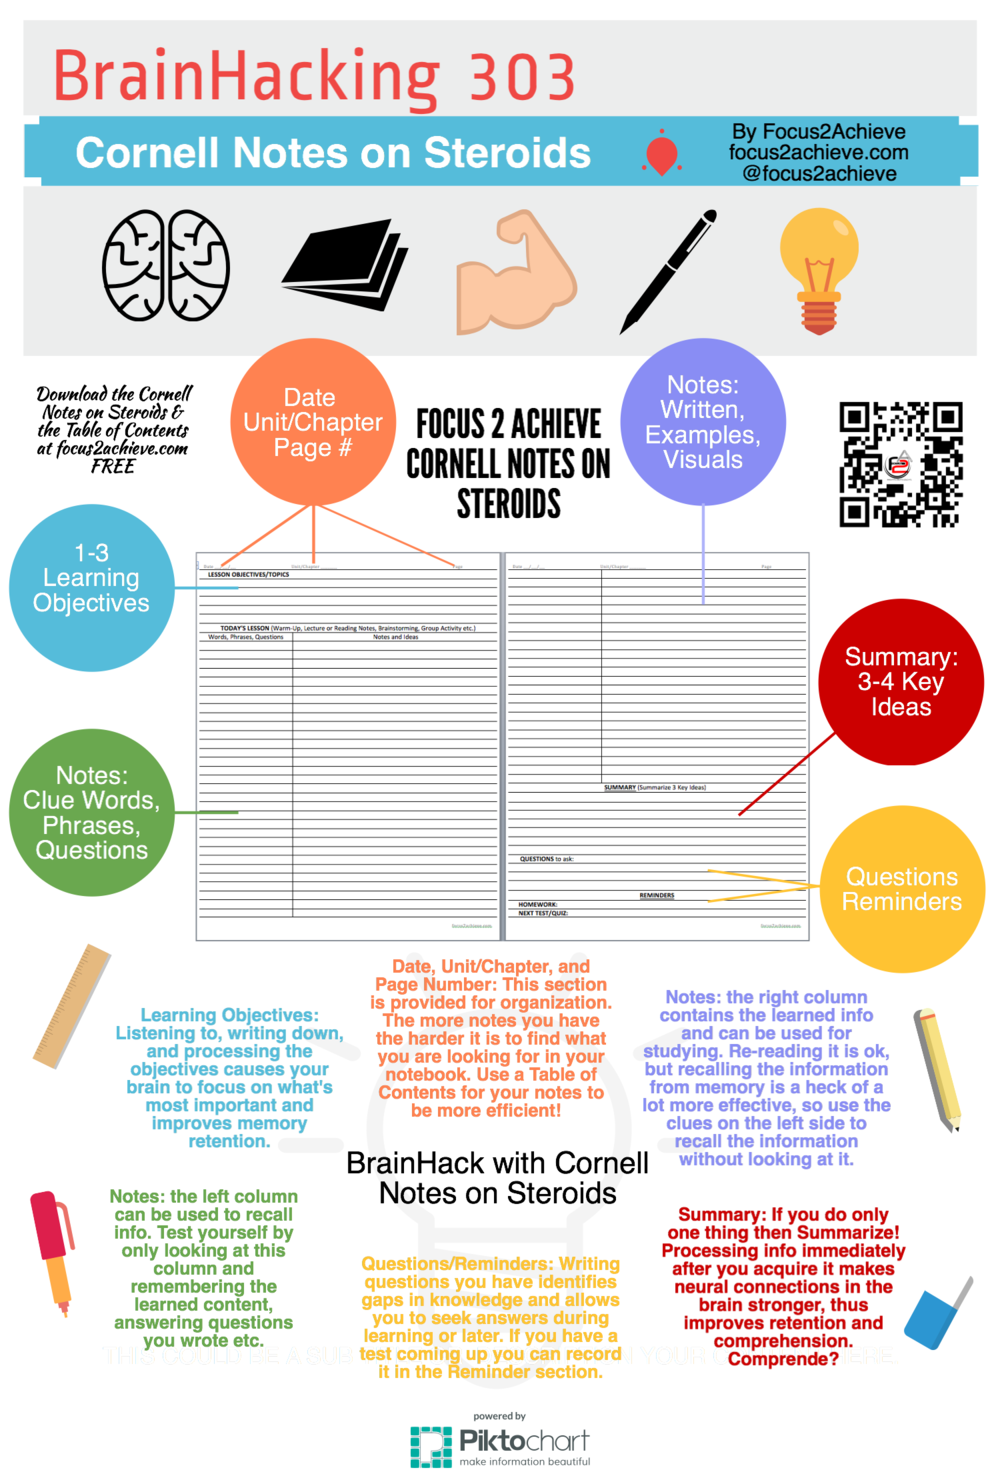 Focus 2 Achieve - Brain Hacking 303: Cornell Notes On Steroids